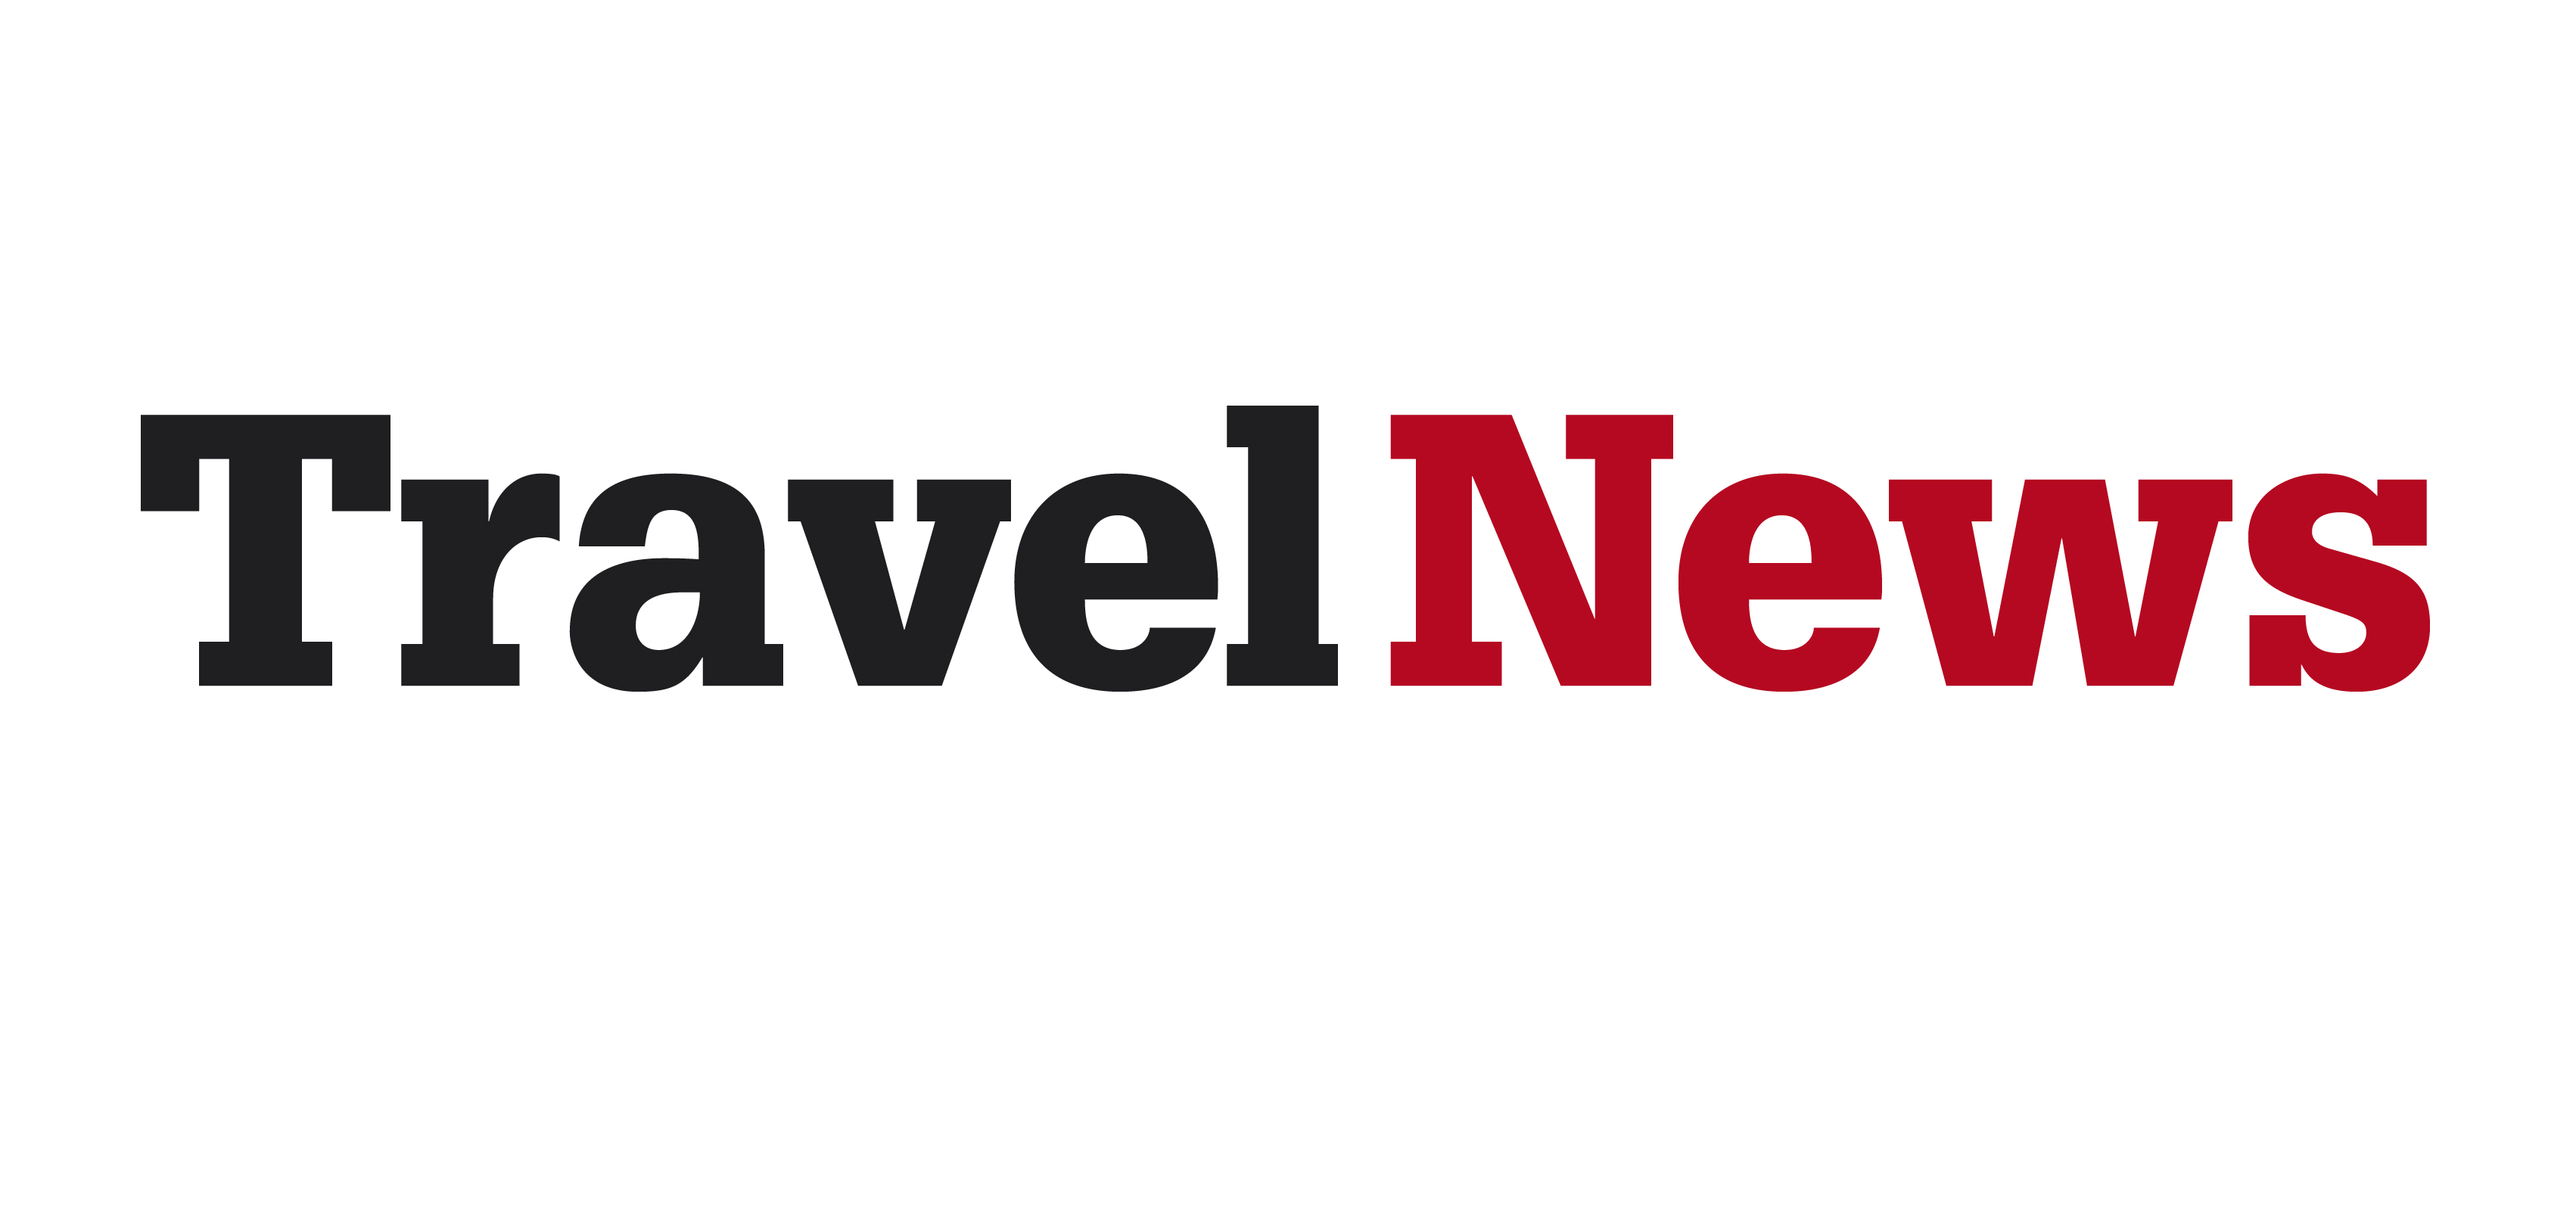 Travel News Logotyp